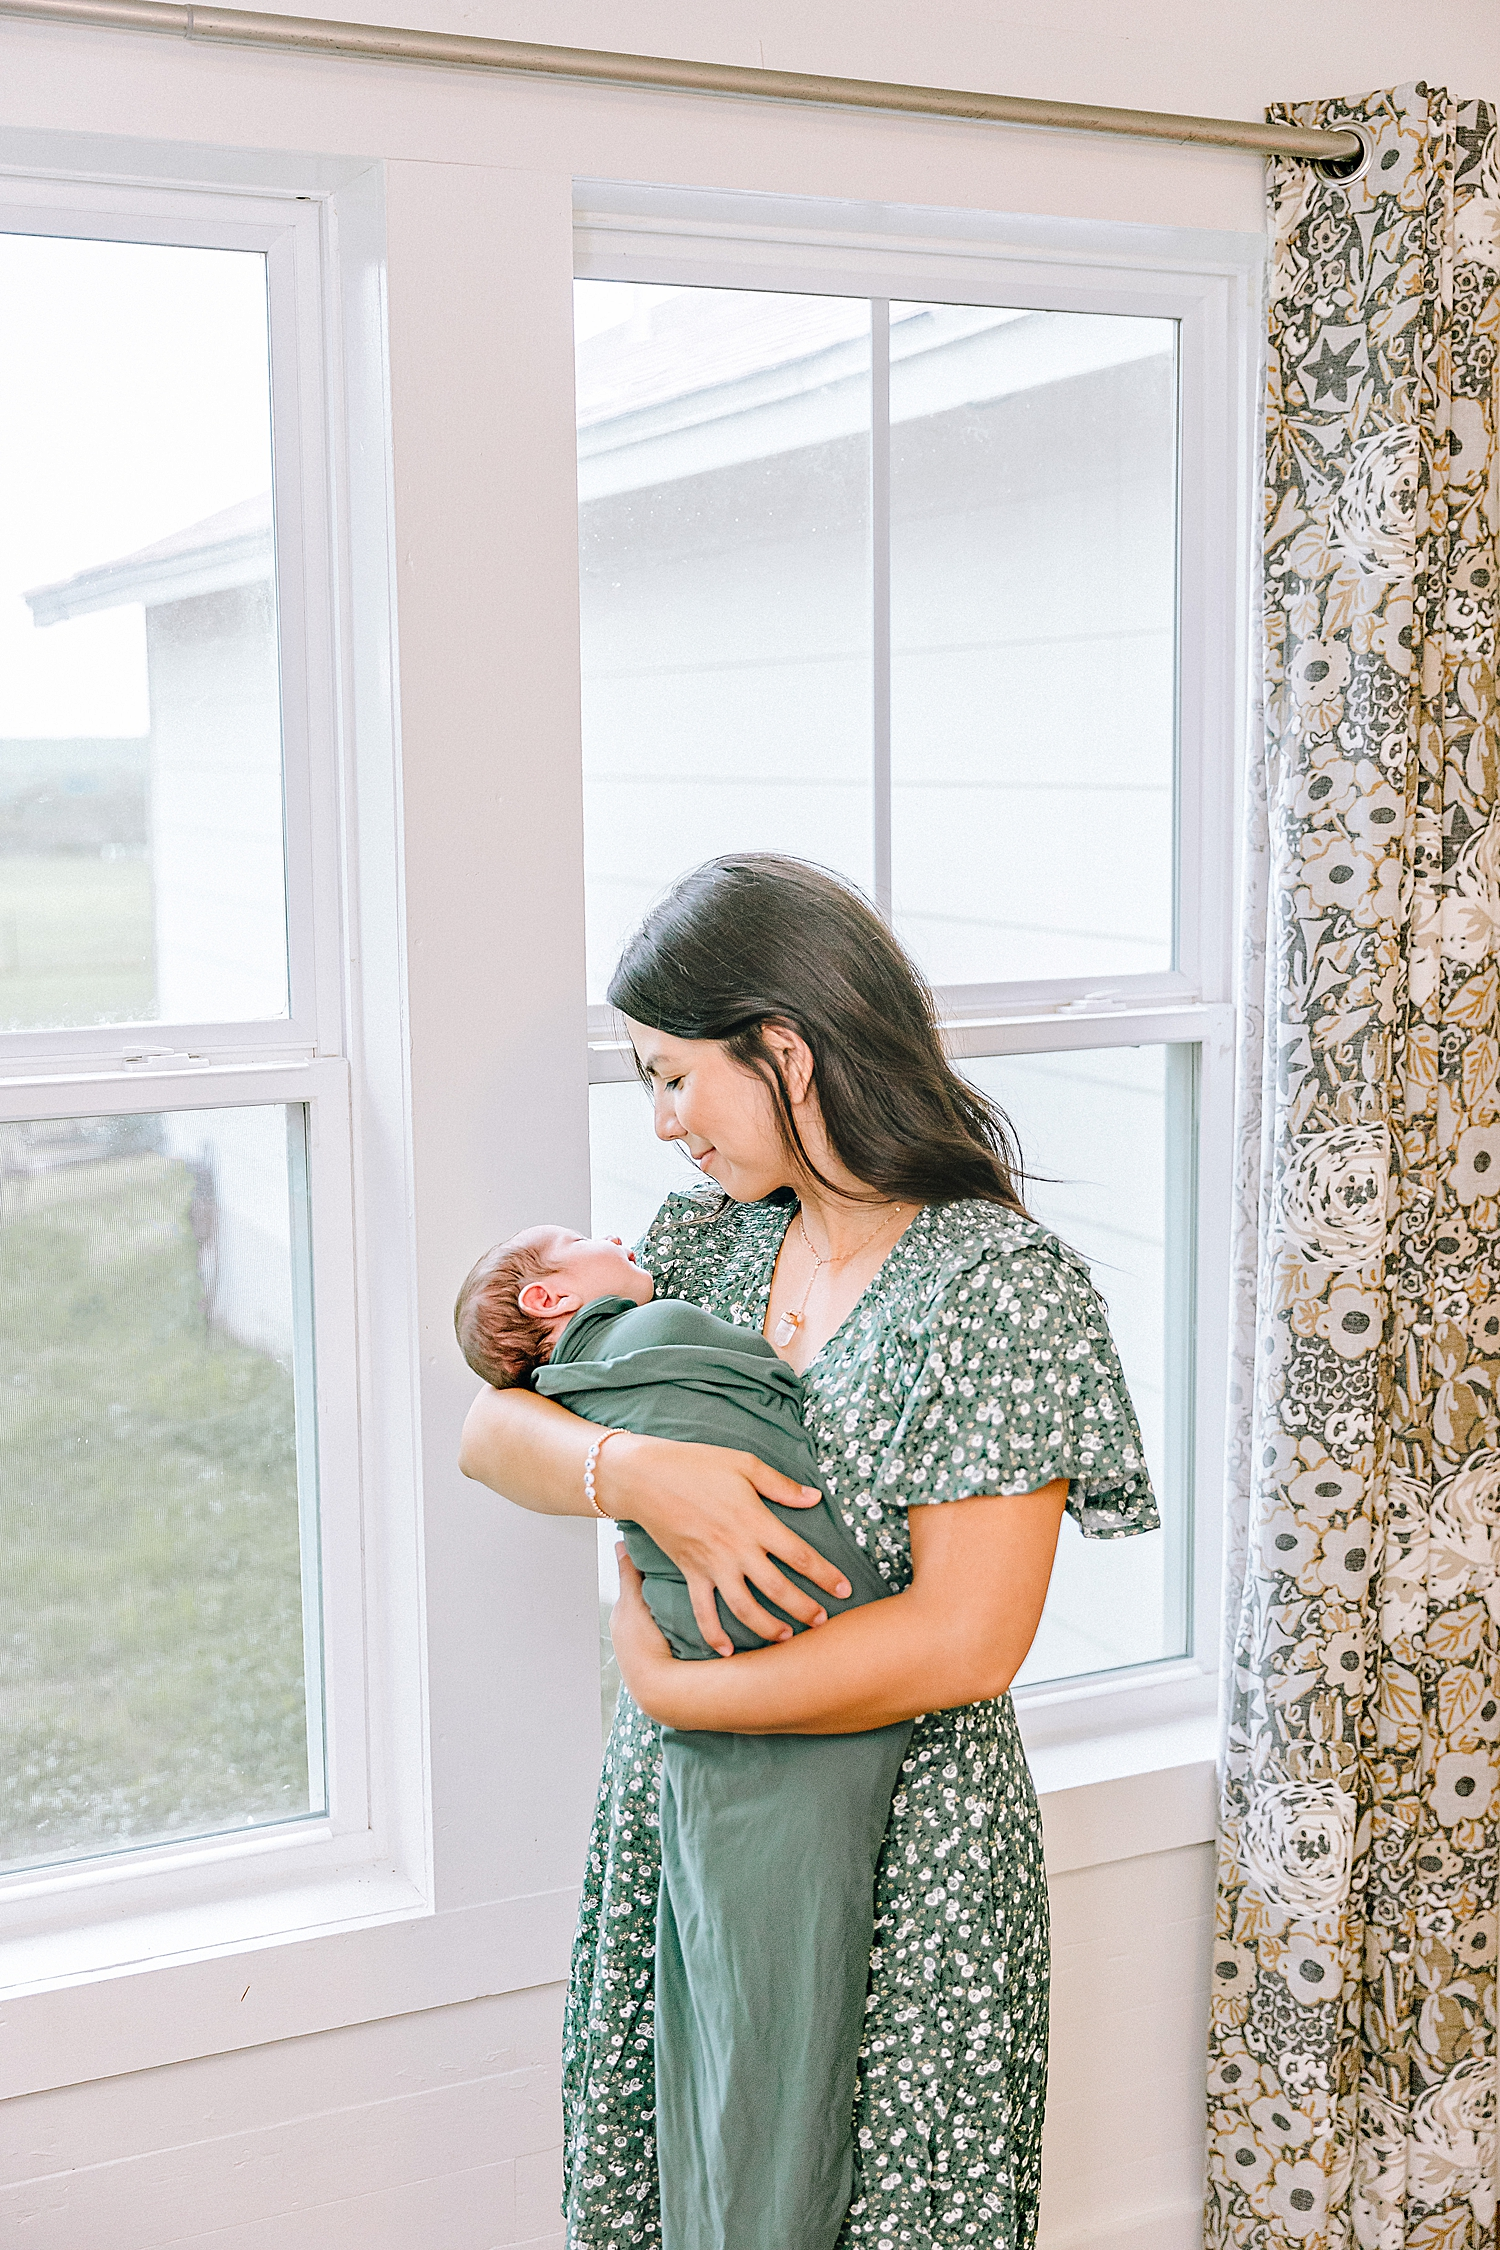 Carly-Barton-Photography-Lifestyle-Newborn-Photographer-Brothers-Family-Photos-Texas_0009.jpg